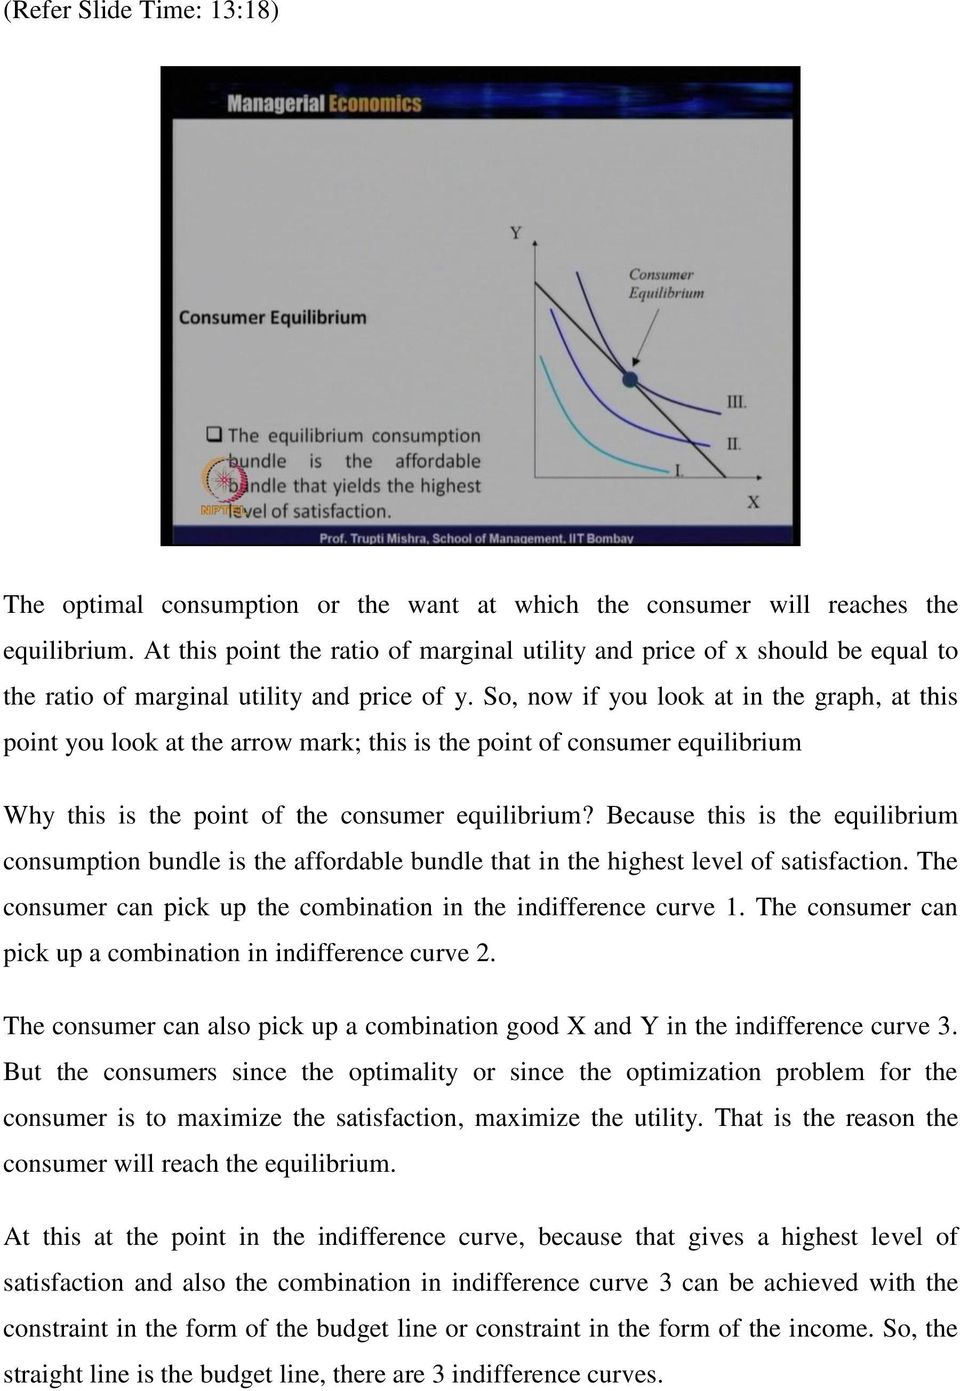 why budget line is a straight line